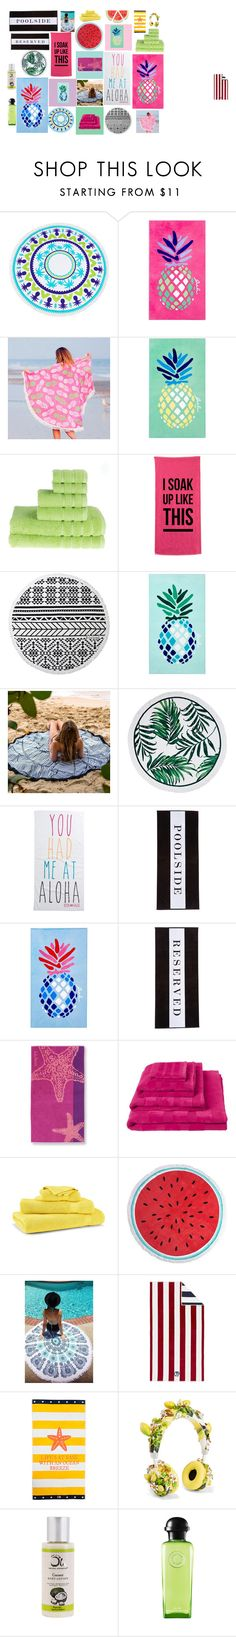 """""""Water Splash Fun!"""" by chellet on Polyvore featuring Belleza, Matouk, The Beach People, Rip Curl, Chance, L.L.Bean, Designers Guild, Ralph Lauren Home, Dorothy Perkins y Pottery Barn"""